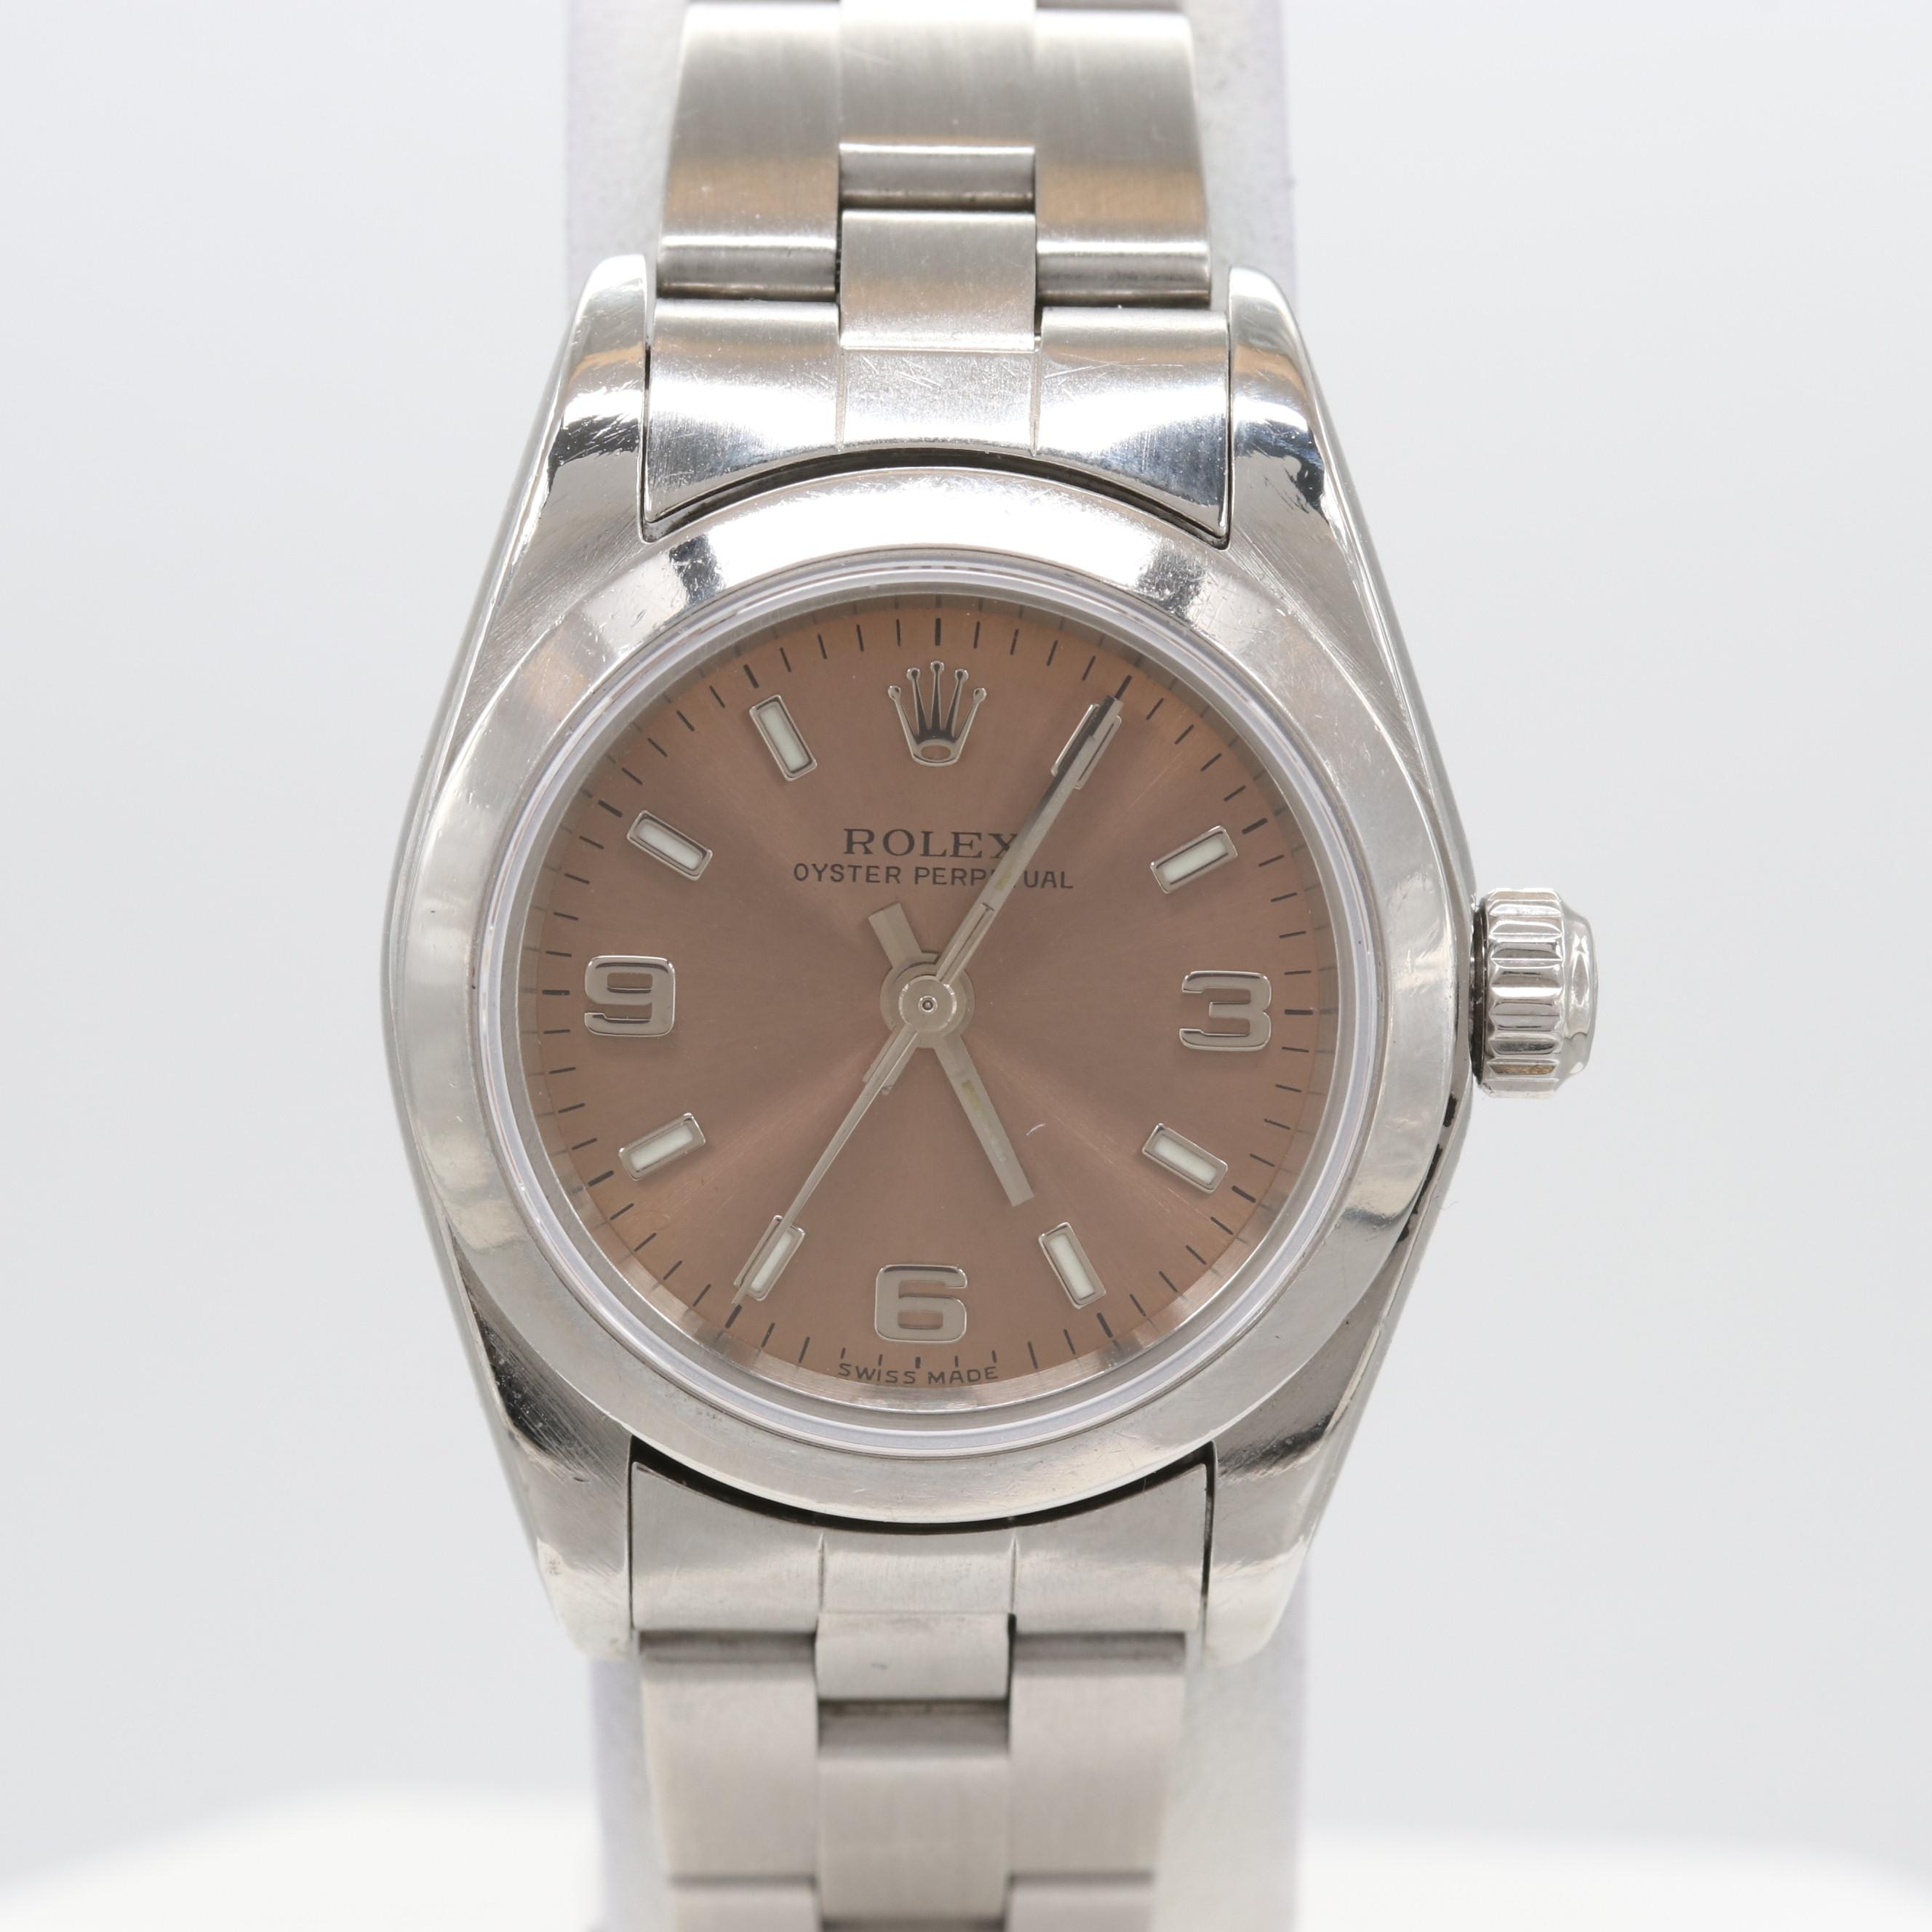 Rolex Oyster Perpetual Stainless Steel Wristwatch, 2001